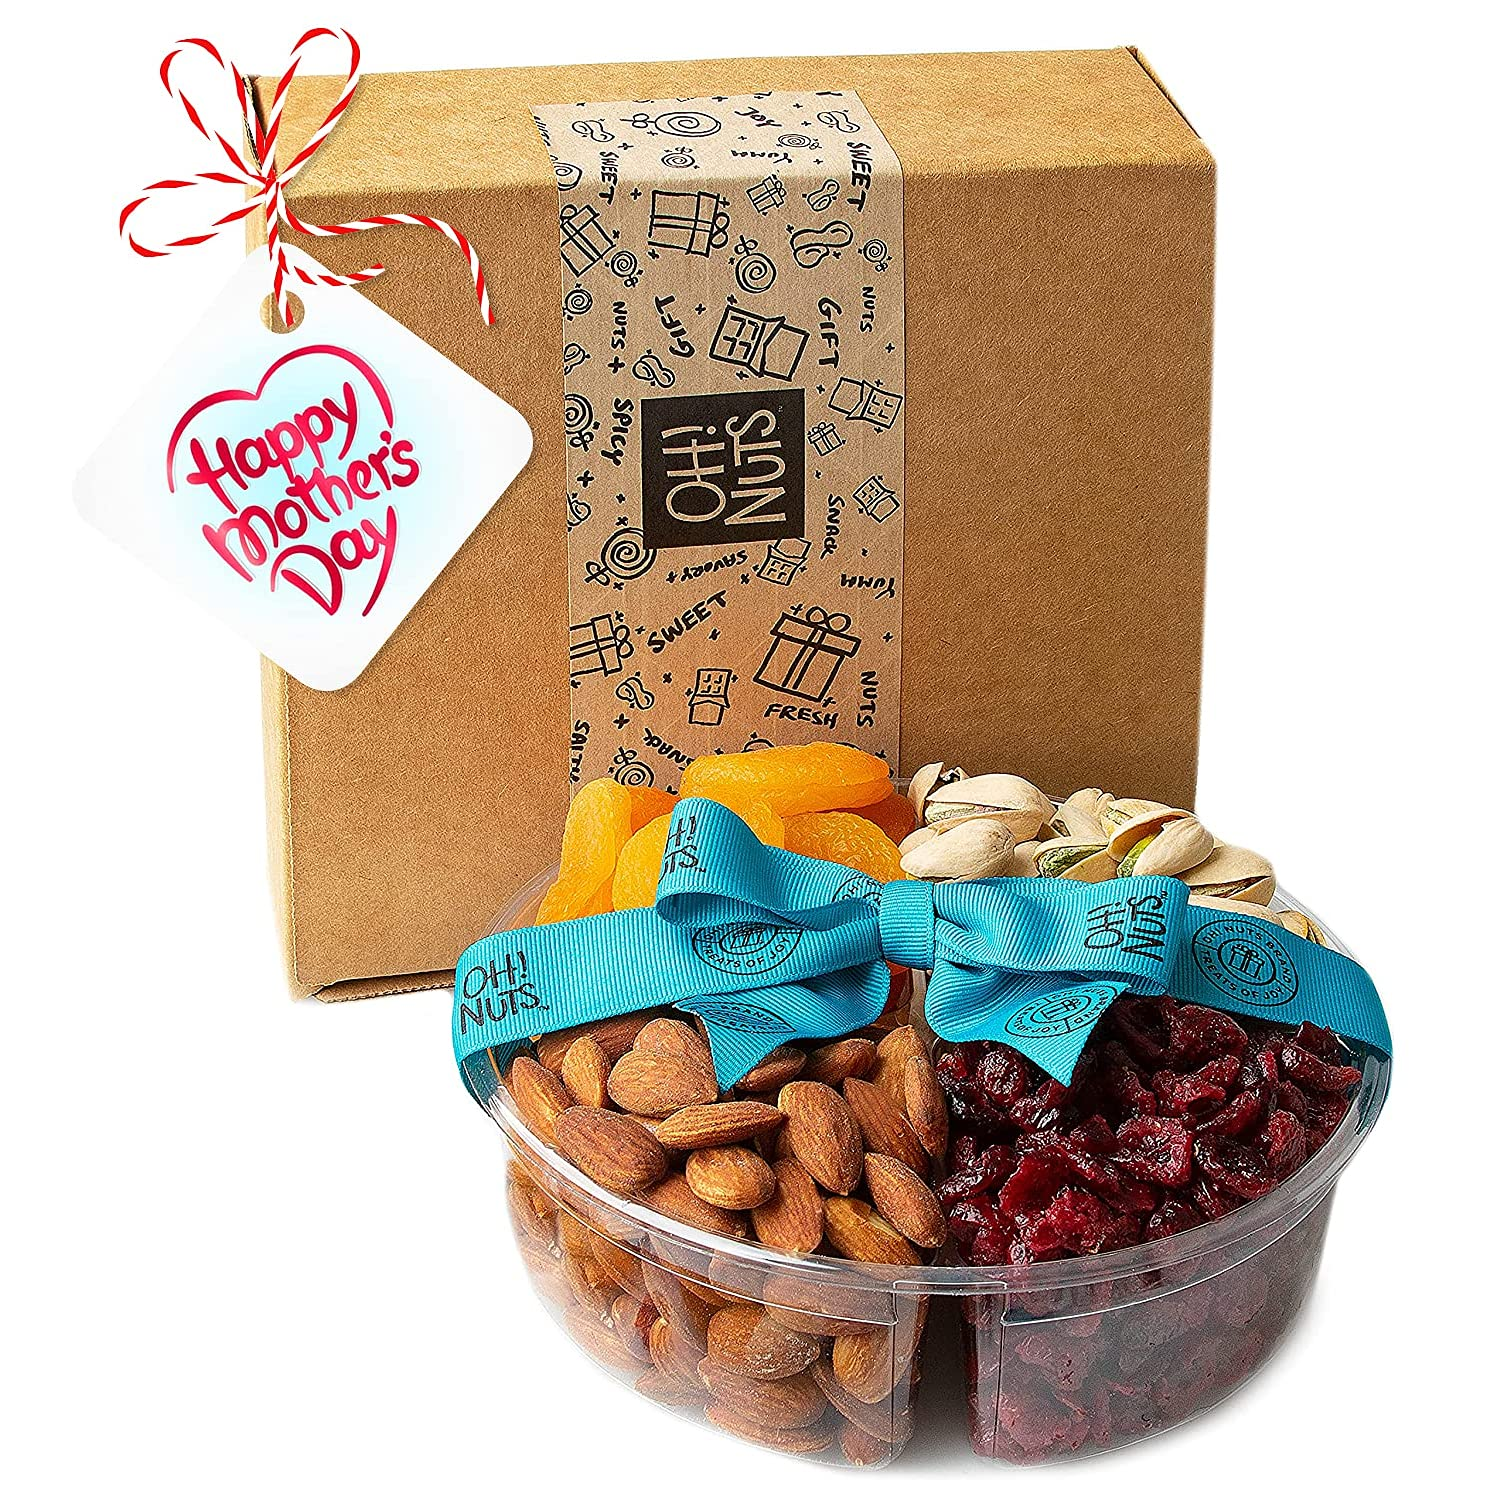 Oh! Nuts 4 Section Sweet Dried Fruits & Nuts Gift Platter for Mothers Day, Healthy Food Kosher Snack Box, Variety Fresh Assortment Tray, Perfect Healthy Gift for Mothers Day Gifting Idea